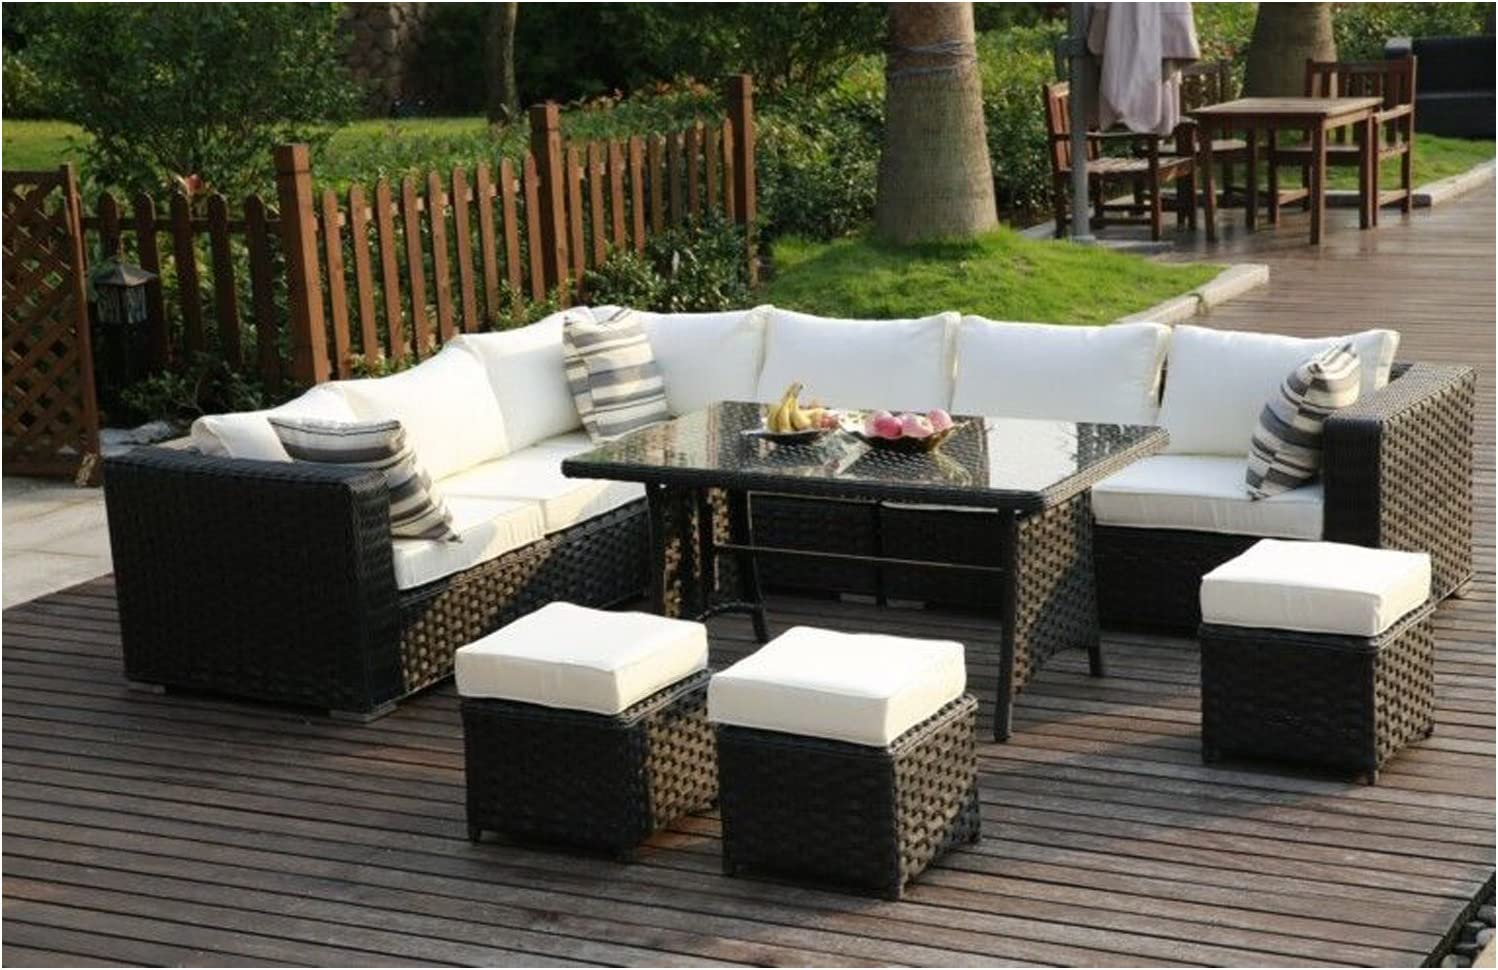 Uk 9 Seater Rattan Garden Furniture Sofa Dining Table Set Conservatory Outdoor Mix Brown Black Beige Cushions Included Amazon Co Uk Garden Outdoors